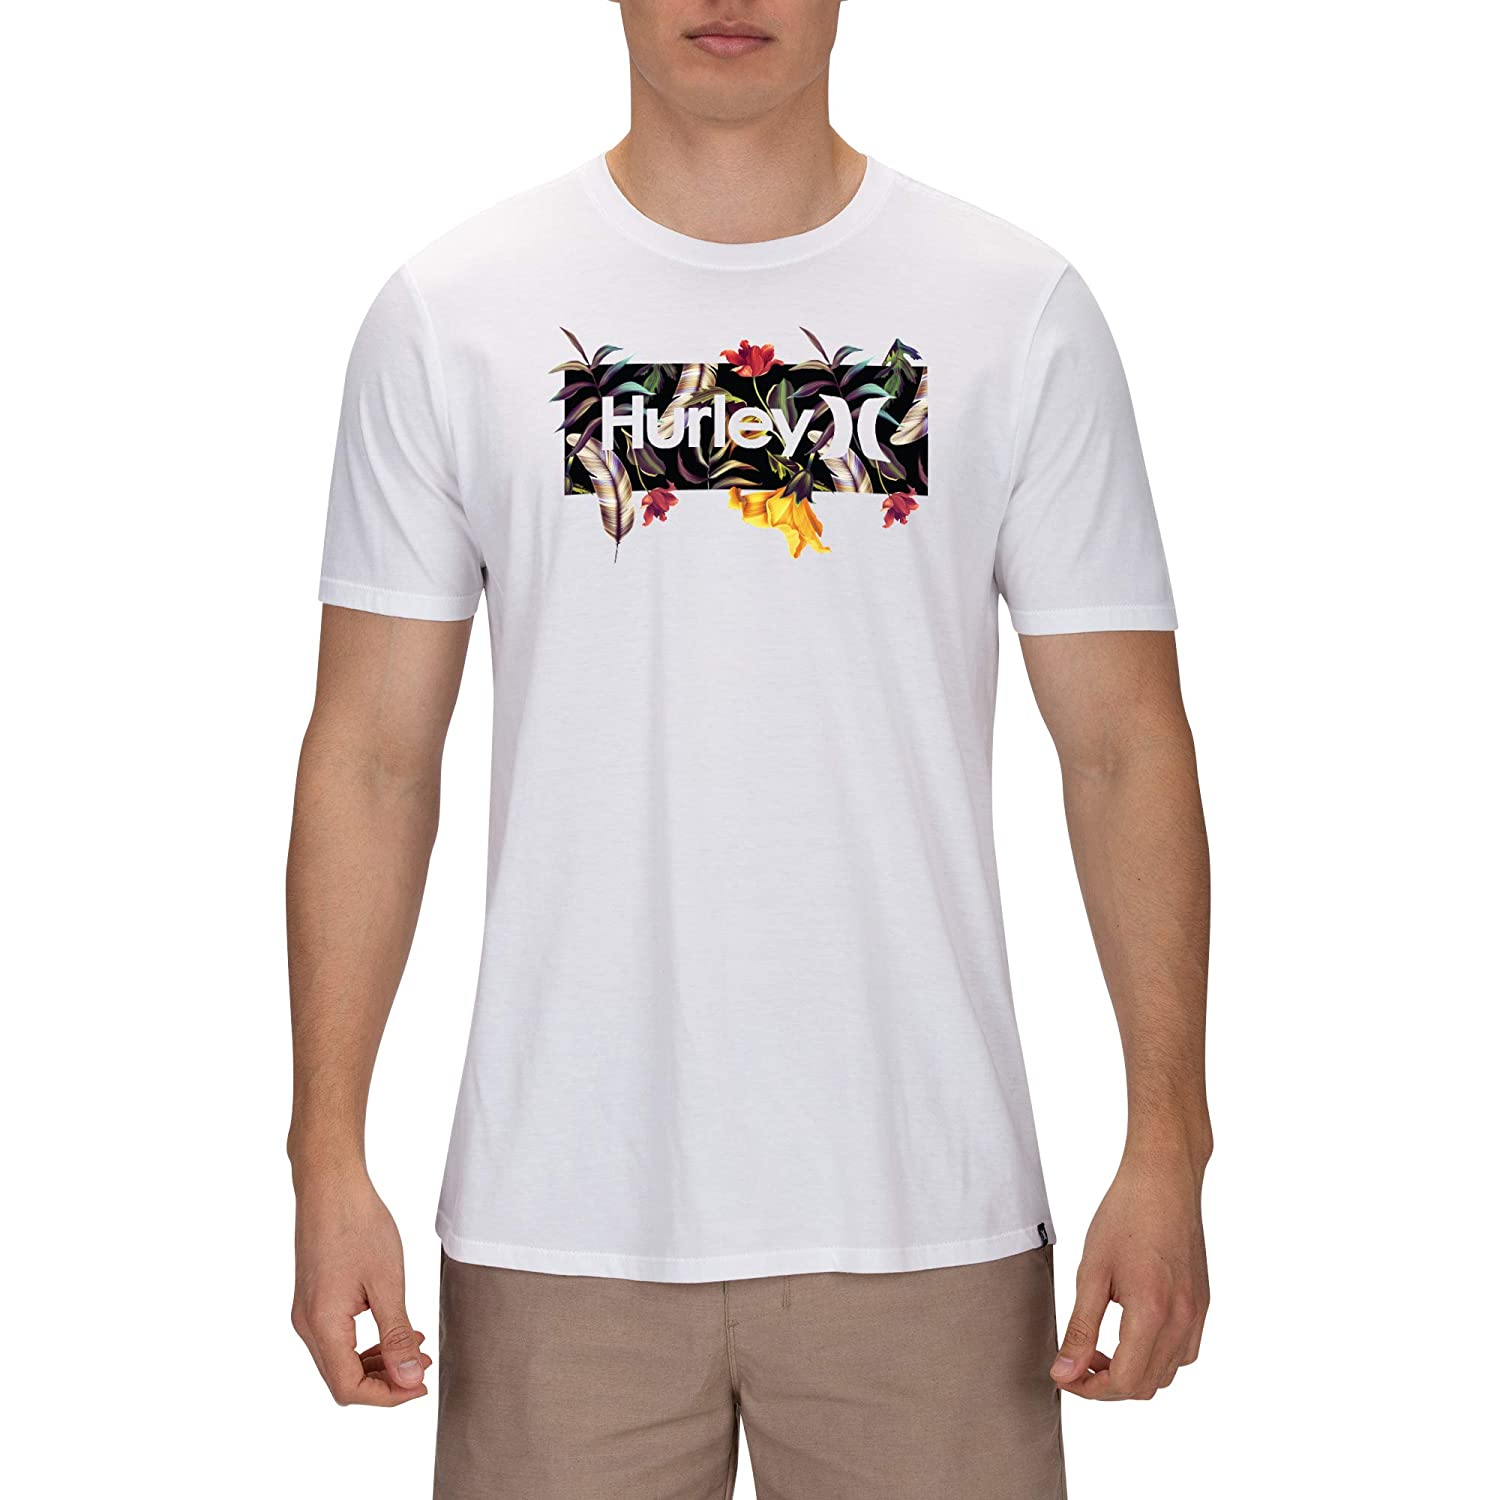 Hurley Mens Premium One and Only Floral Short Sleeve Tee